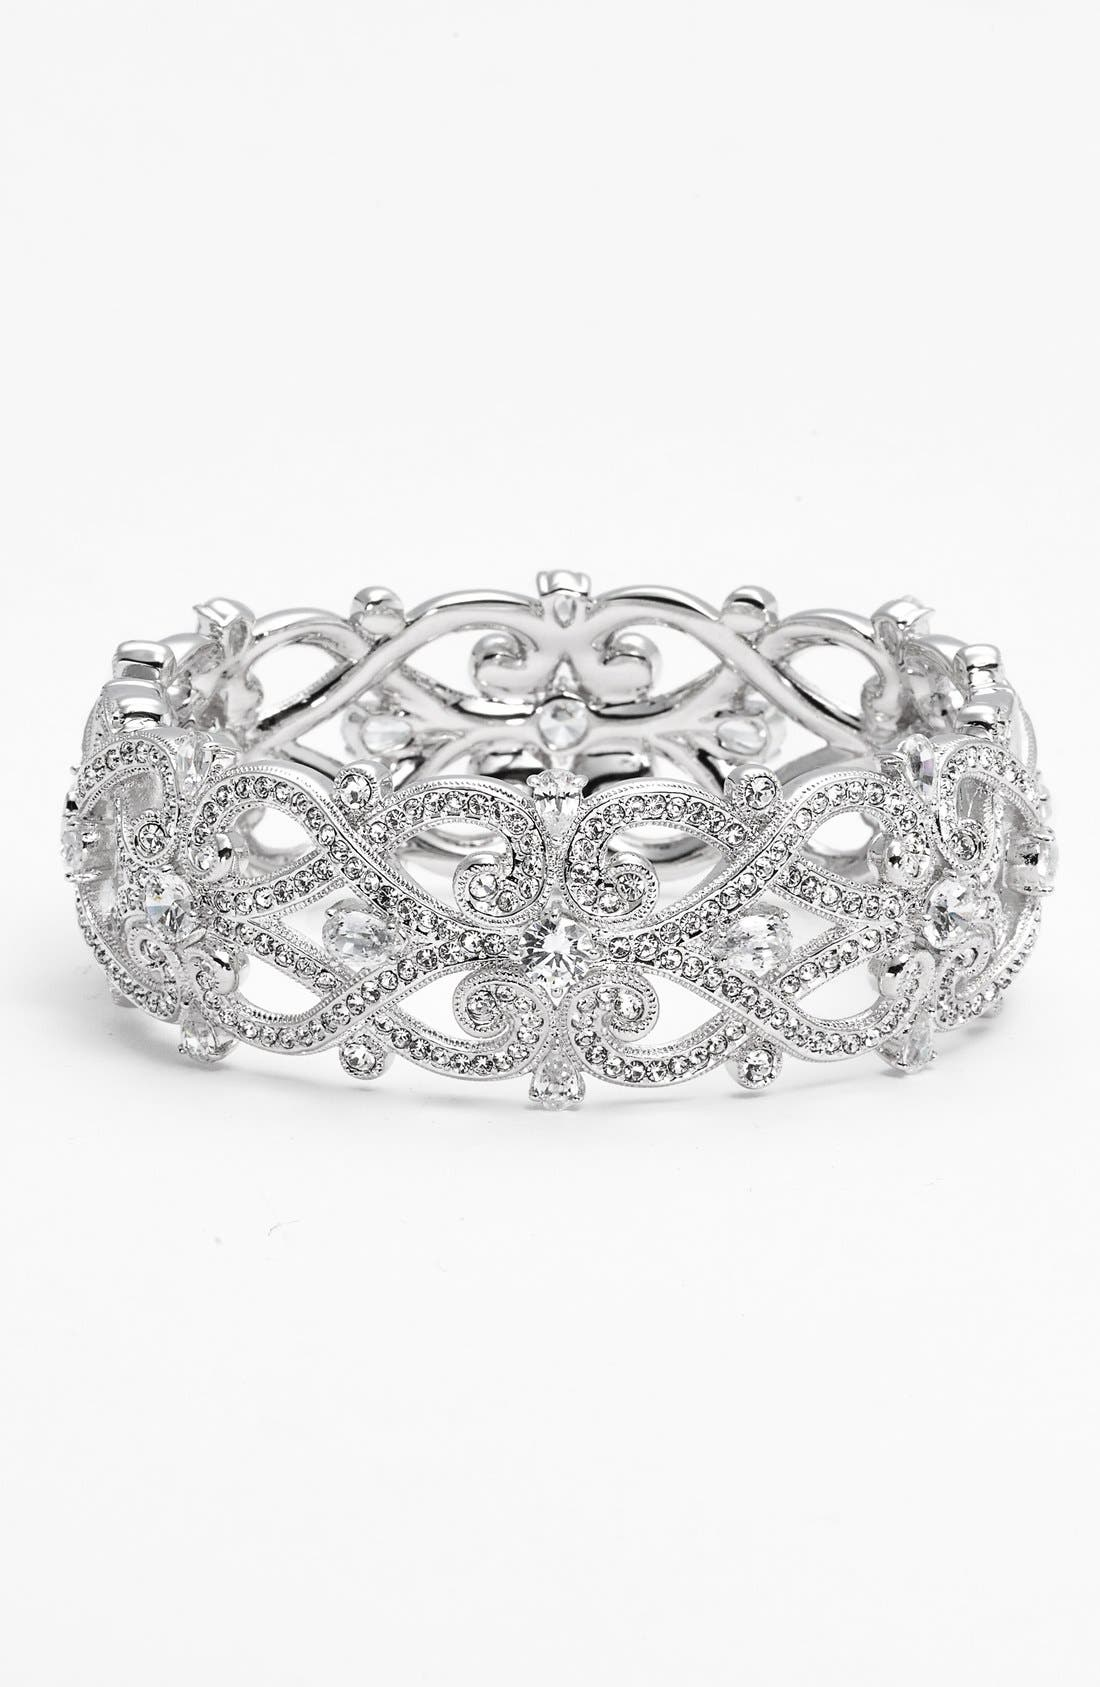 Main Image - Nadri 'Celtic Knot' Crystal Bangle